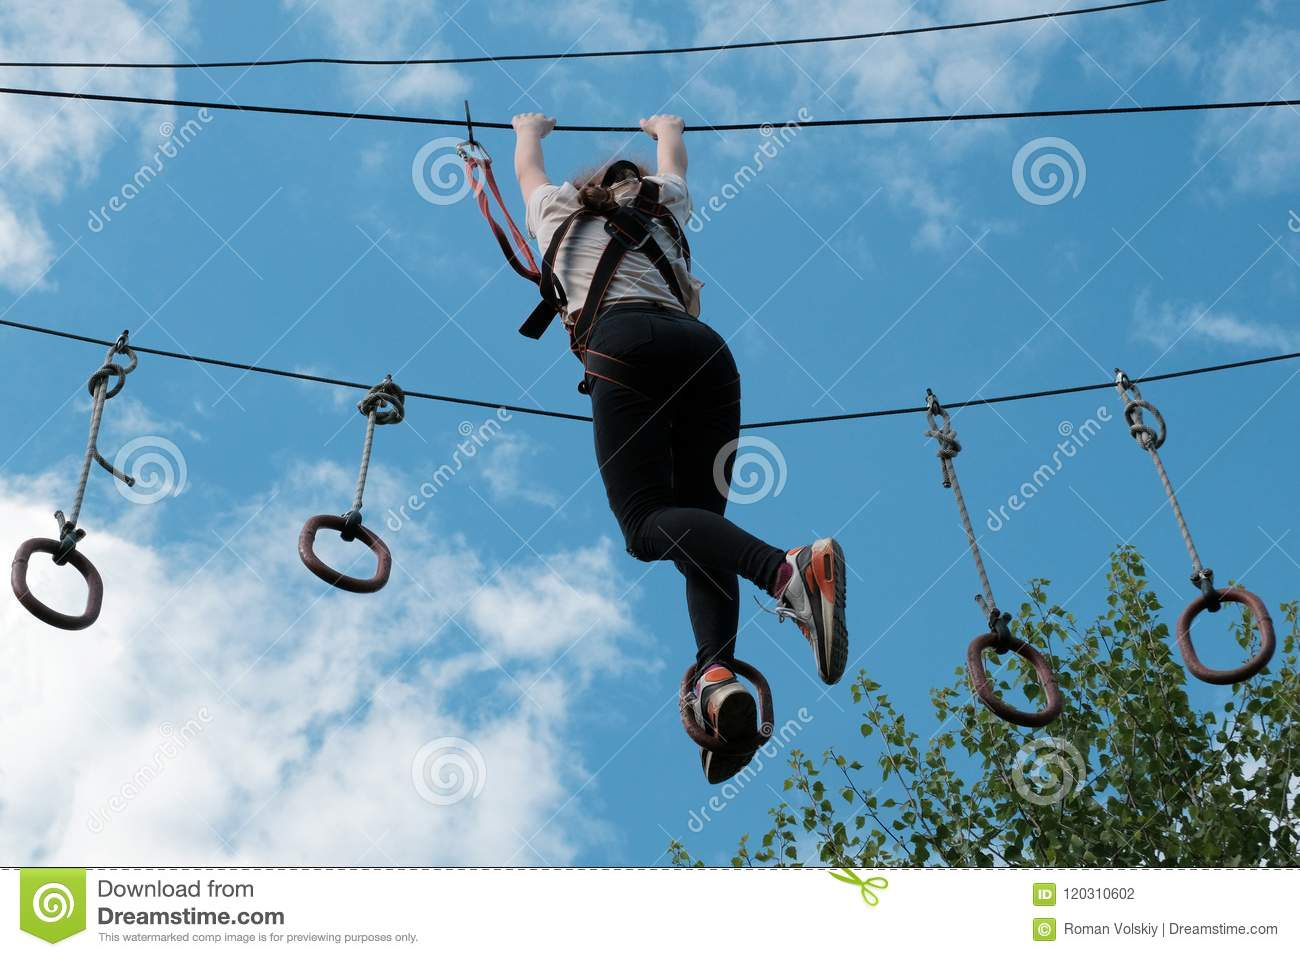 A girl enjoys climbing in the ropes course adventure. Climbing high wire park. Copy space for your text.